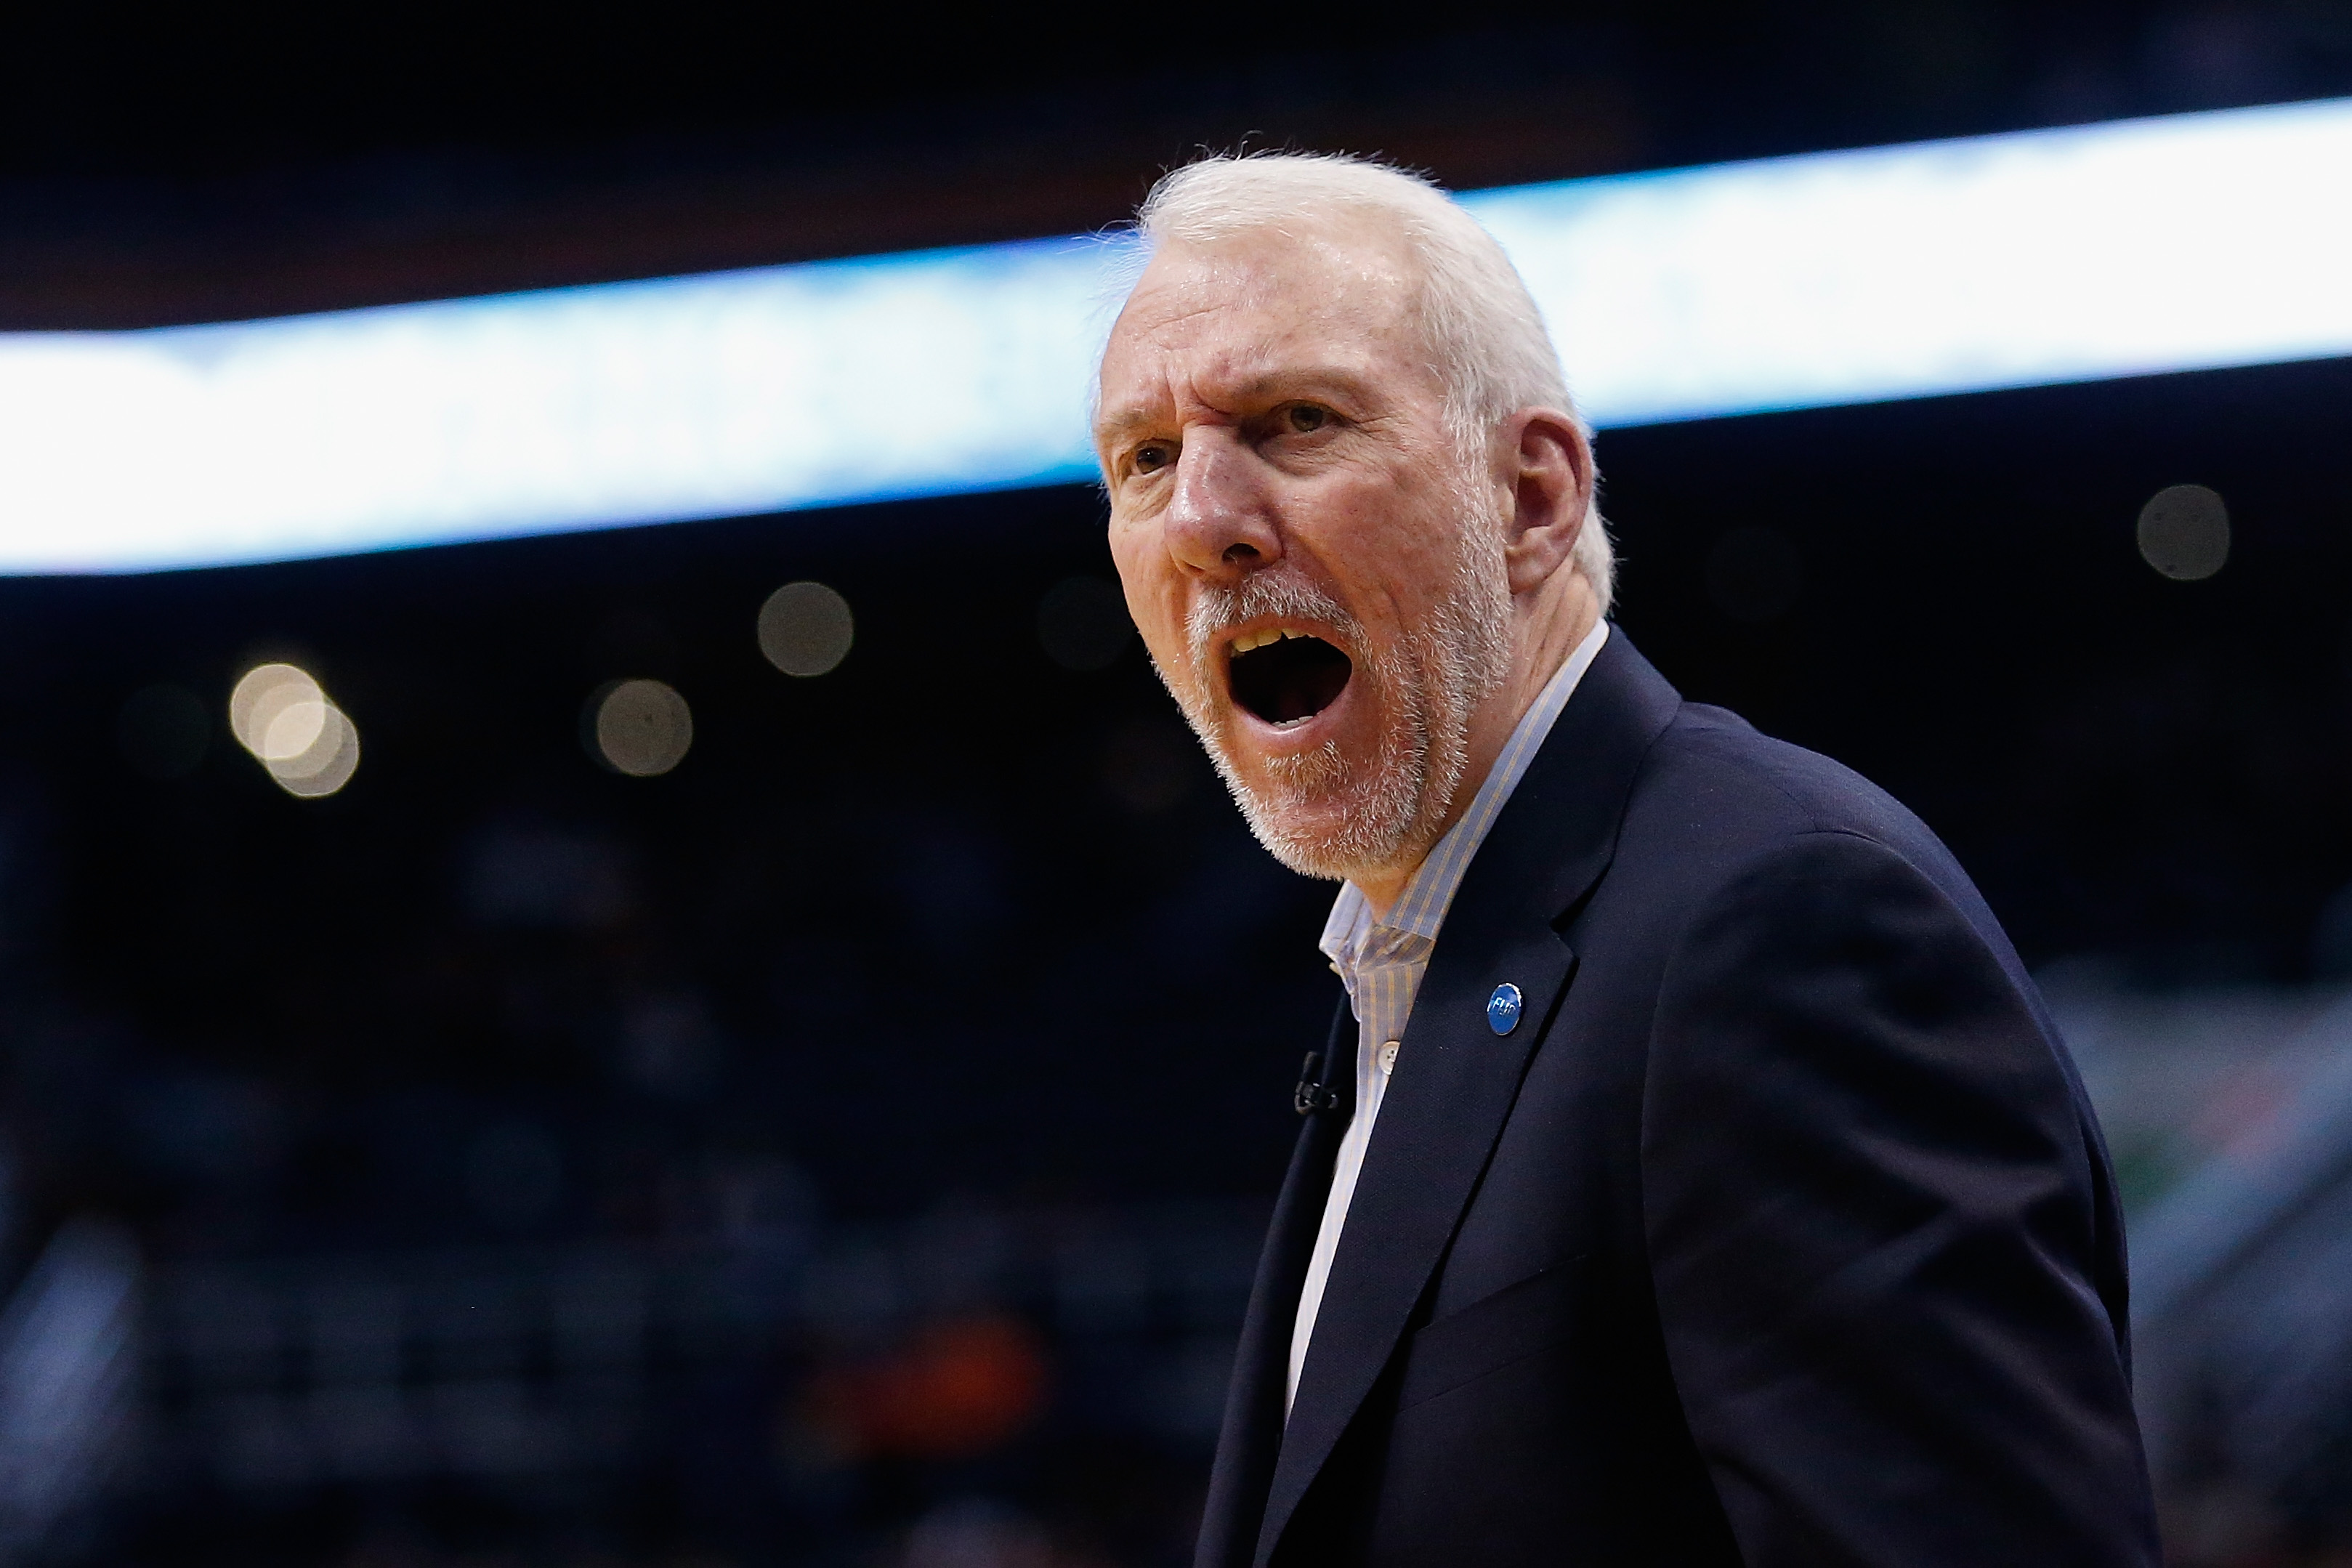 PHOENIX, AZ - JANUARY 21:  Head coach Gregg Popovich of the San Antonio Spurs reacts on the bench during the second half of the NBA game against the Phoenix Suns at Talking Stick Resort Arena on January 21, 2016 in Phoenix, Arizona.  (Photo by Christian P